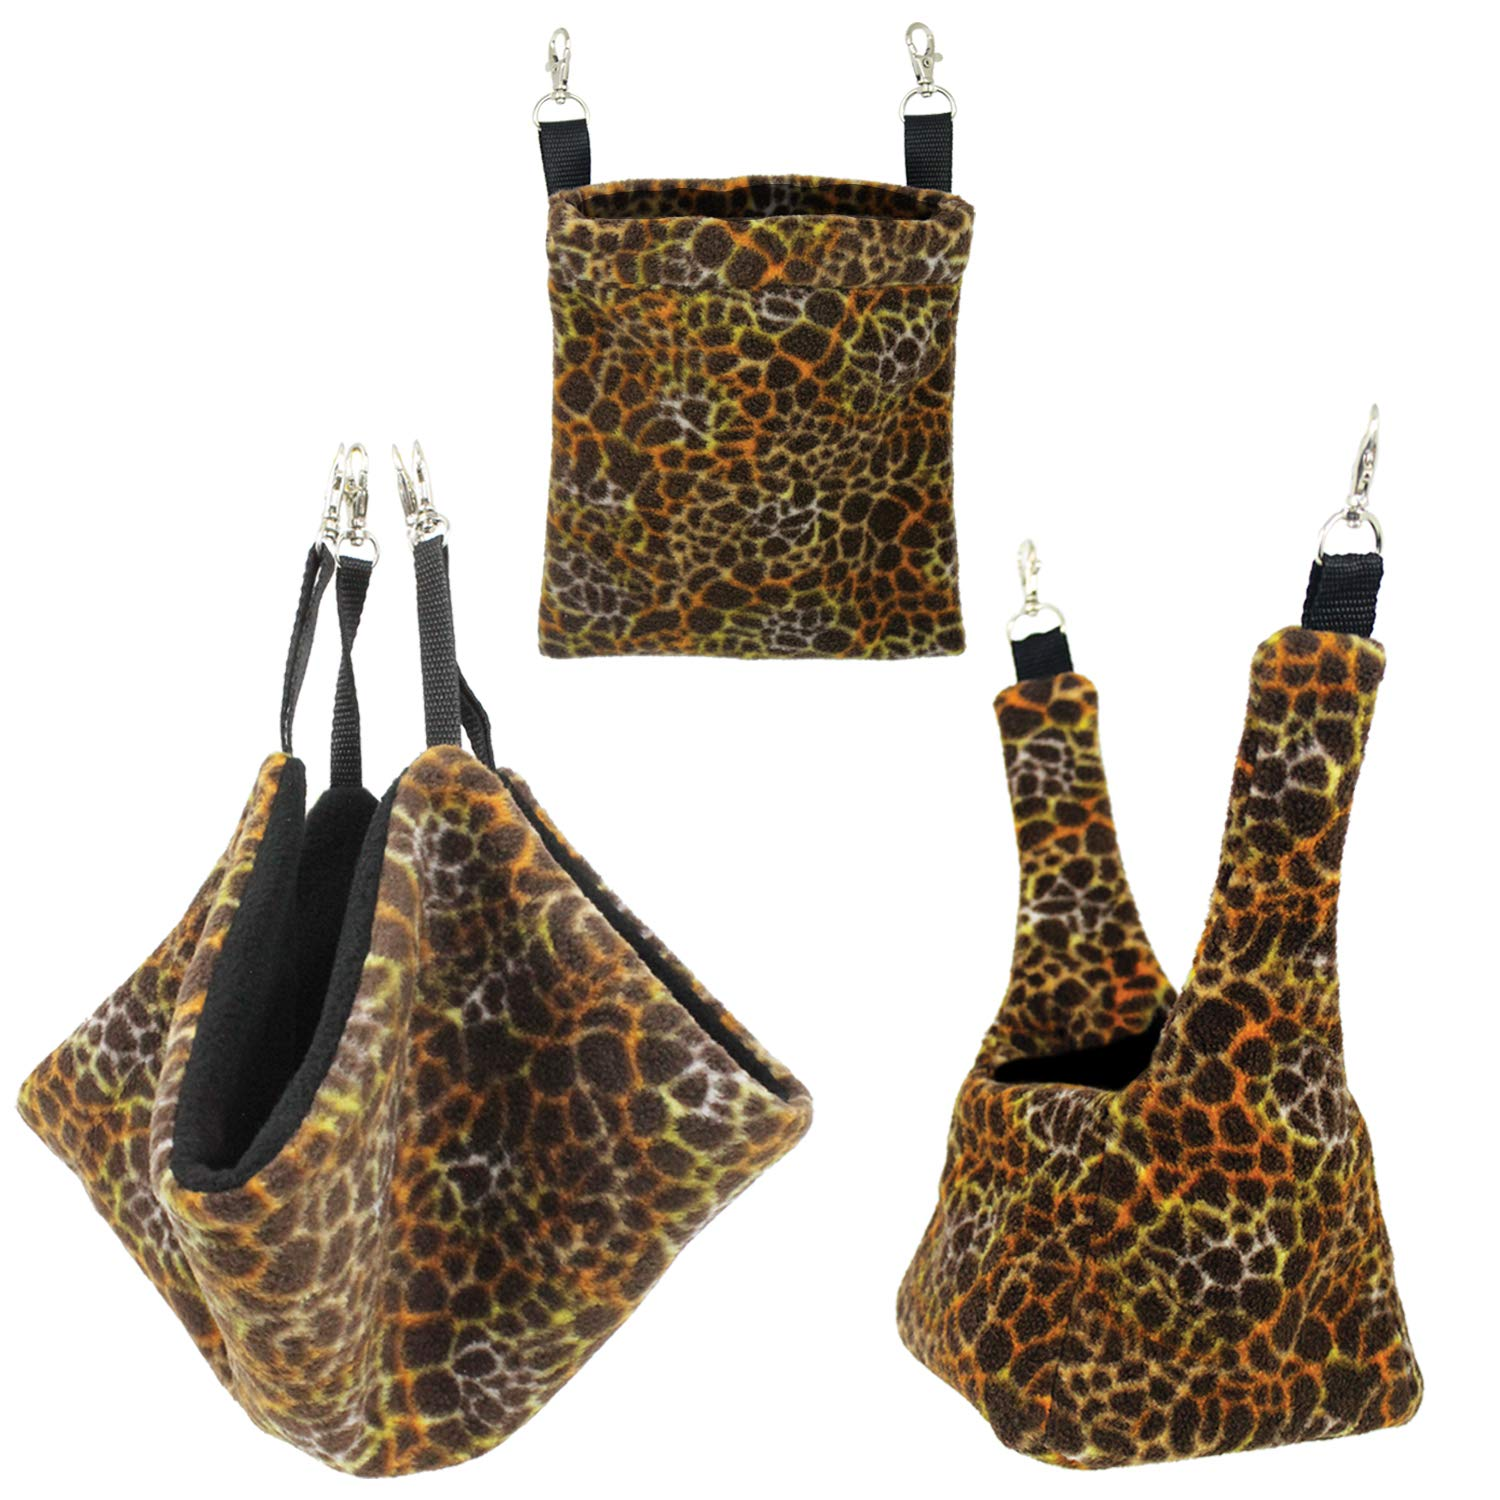 Exotic Nutrition Giraffe Pouch Set - Hammocks and Bedding for Sugar Gliders, Chinchillas, Rats, Ferrets, Rabbits, Hamsters, Squirrels, Parrots, Birds by Exotic Nutrition